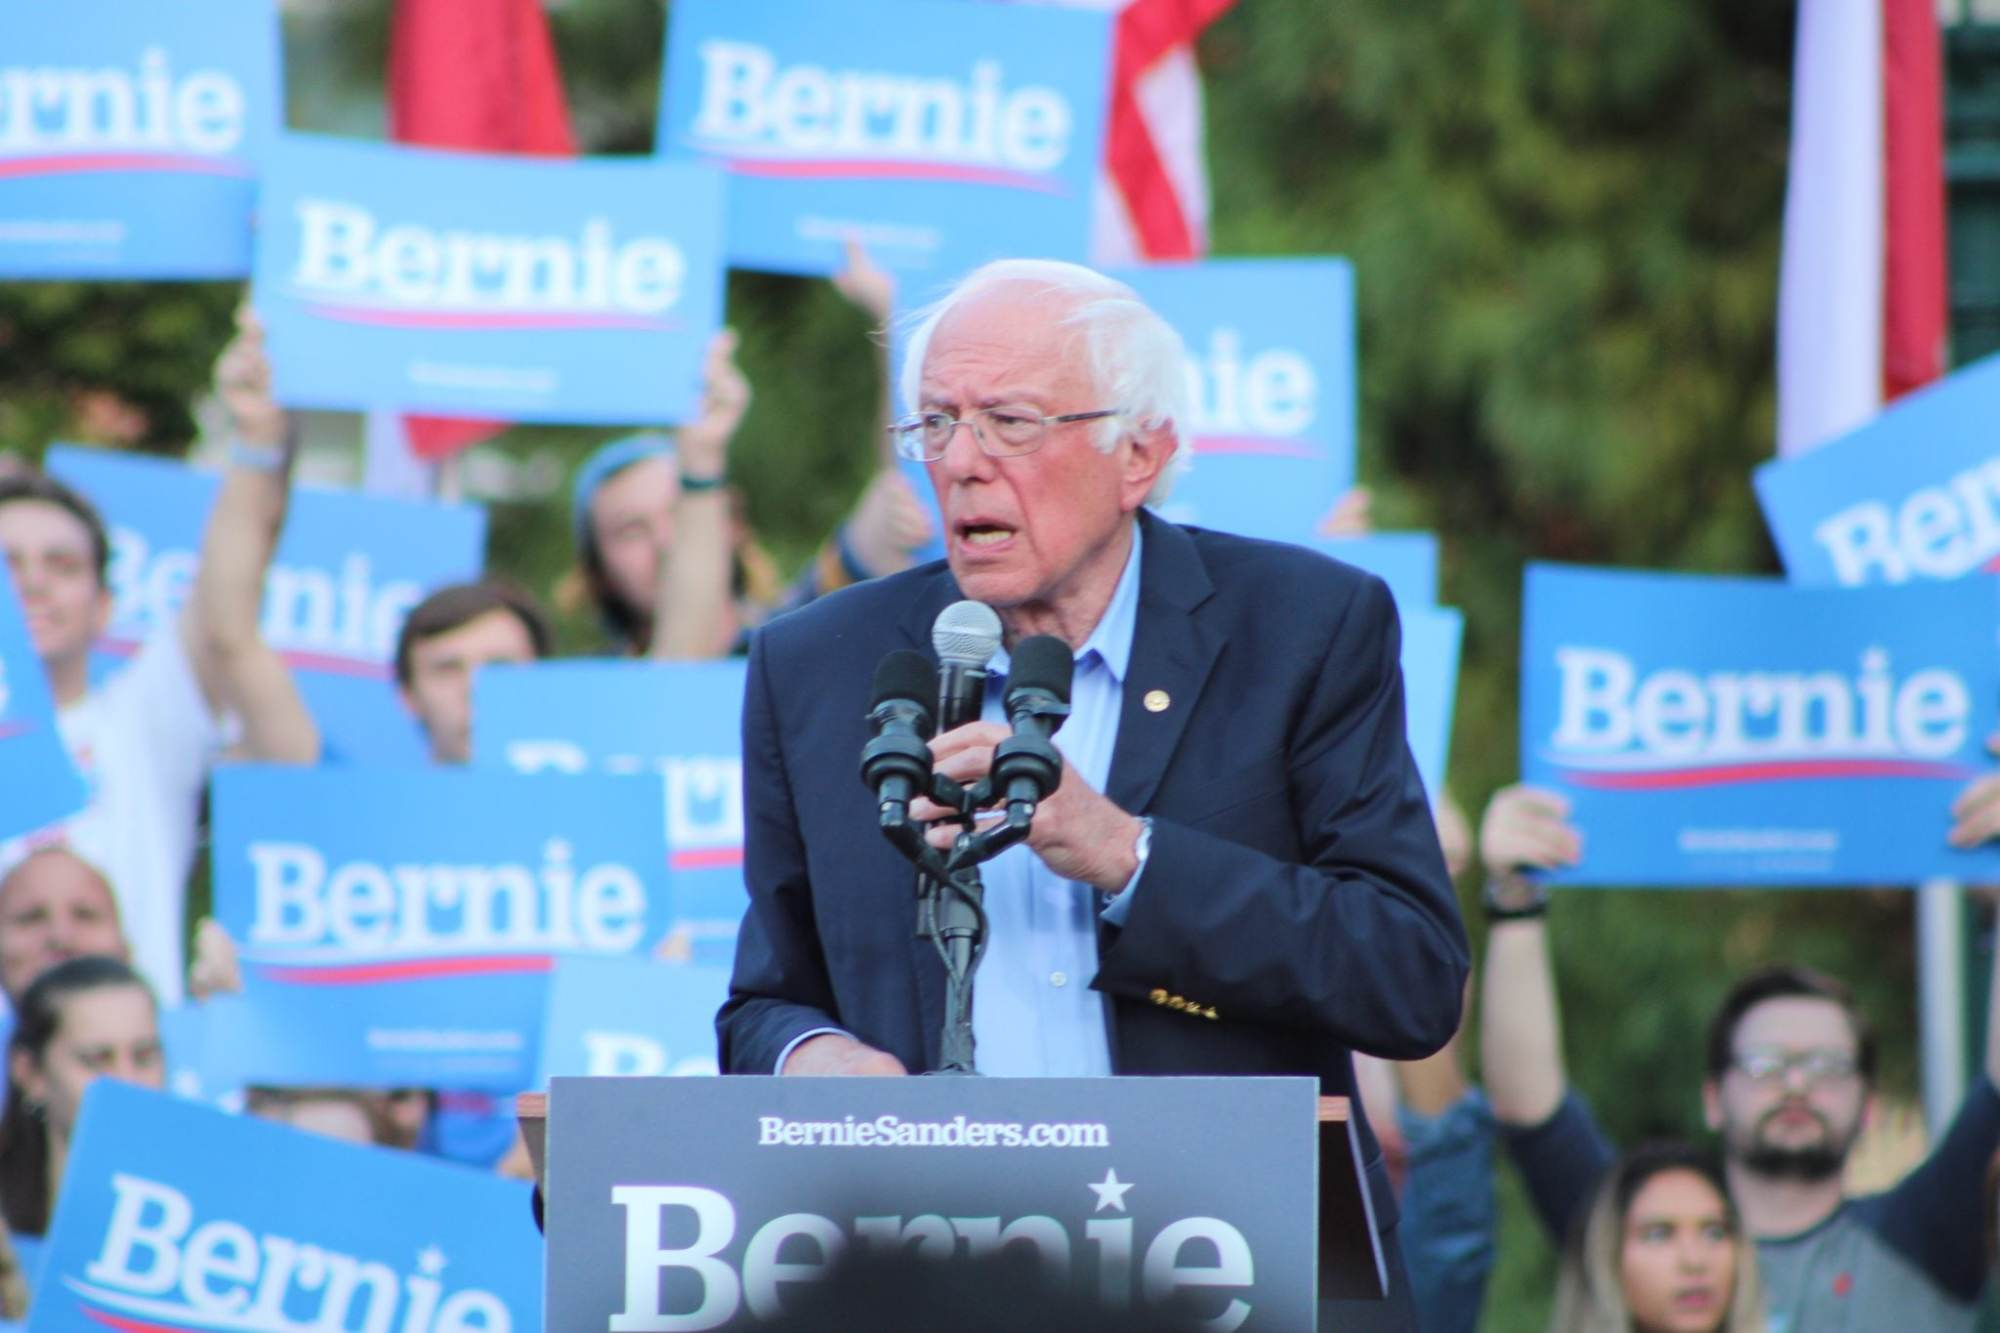 Sanders Recovering After Heart Surgery. Can The Same Be Said for His, Biden's Campaigns?